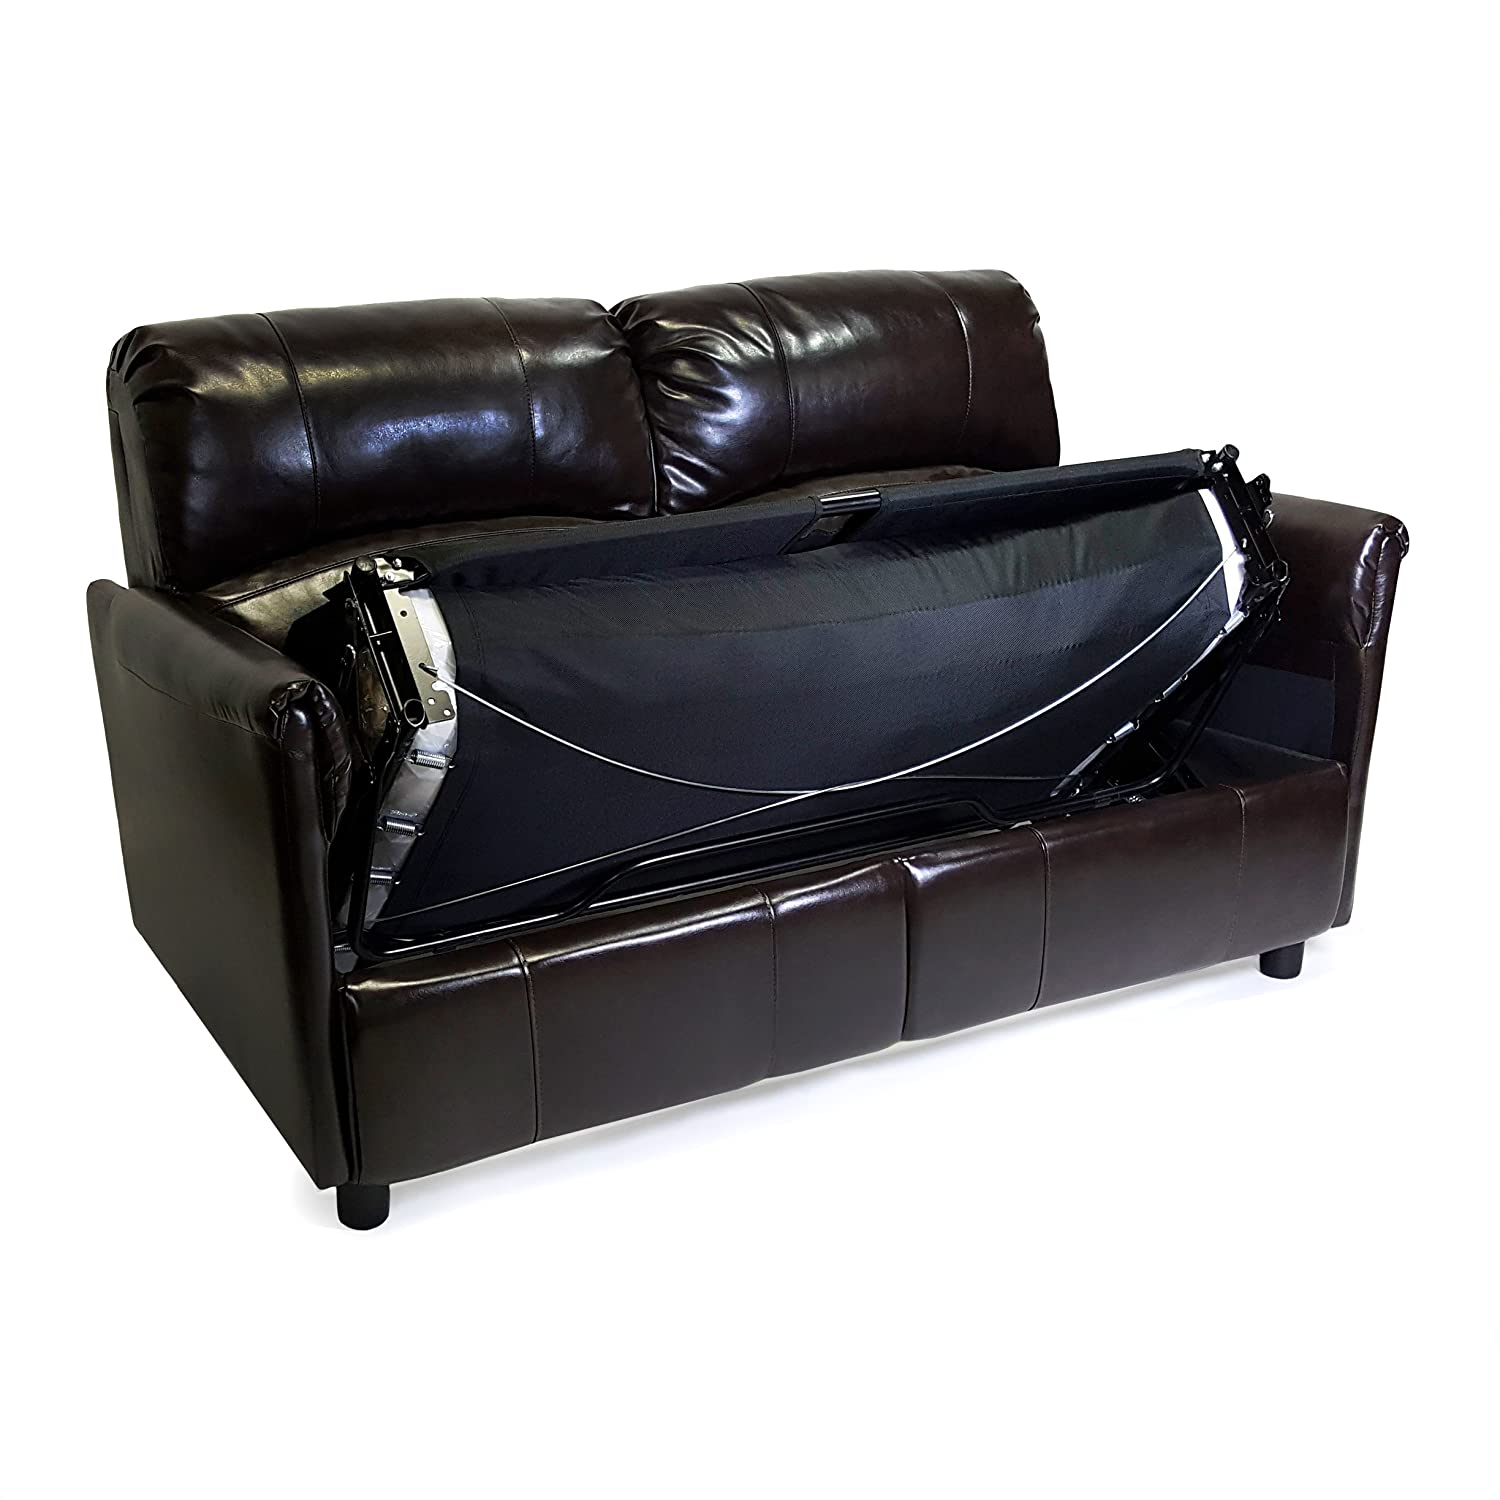 Awesome jack knife sofa marmsweb marmsweb Rv hide a bed couch